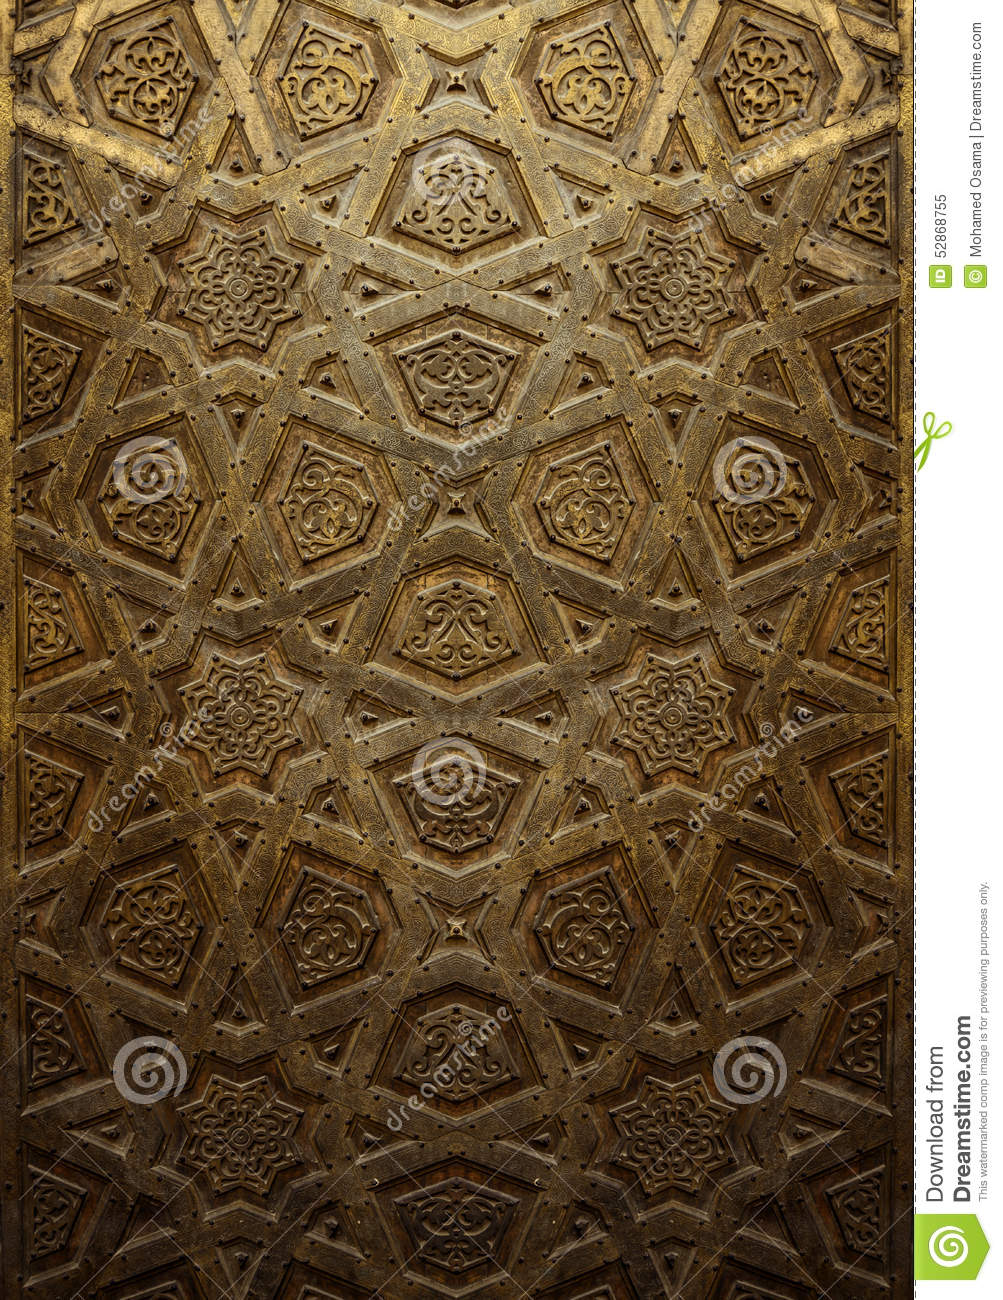 Decorative Islamic Wood Art Door Stock Photo Image 52868755